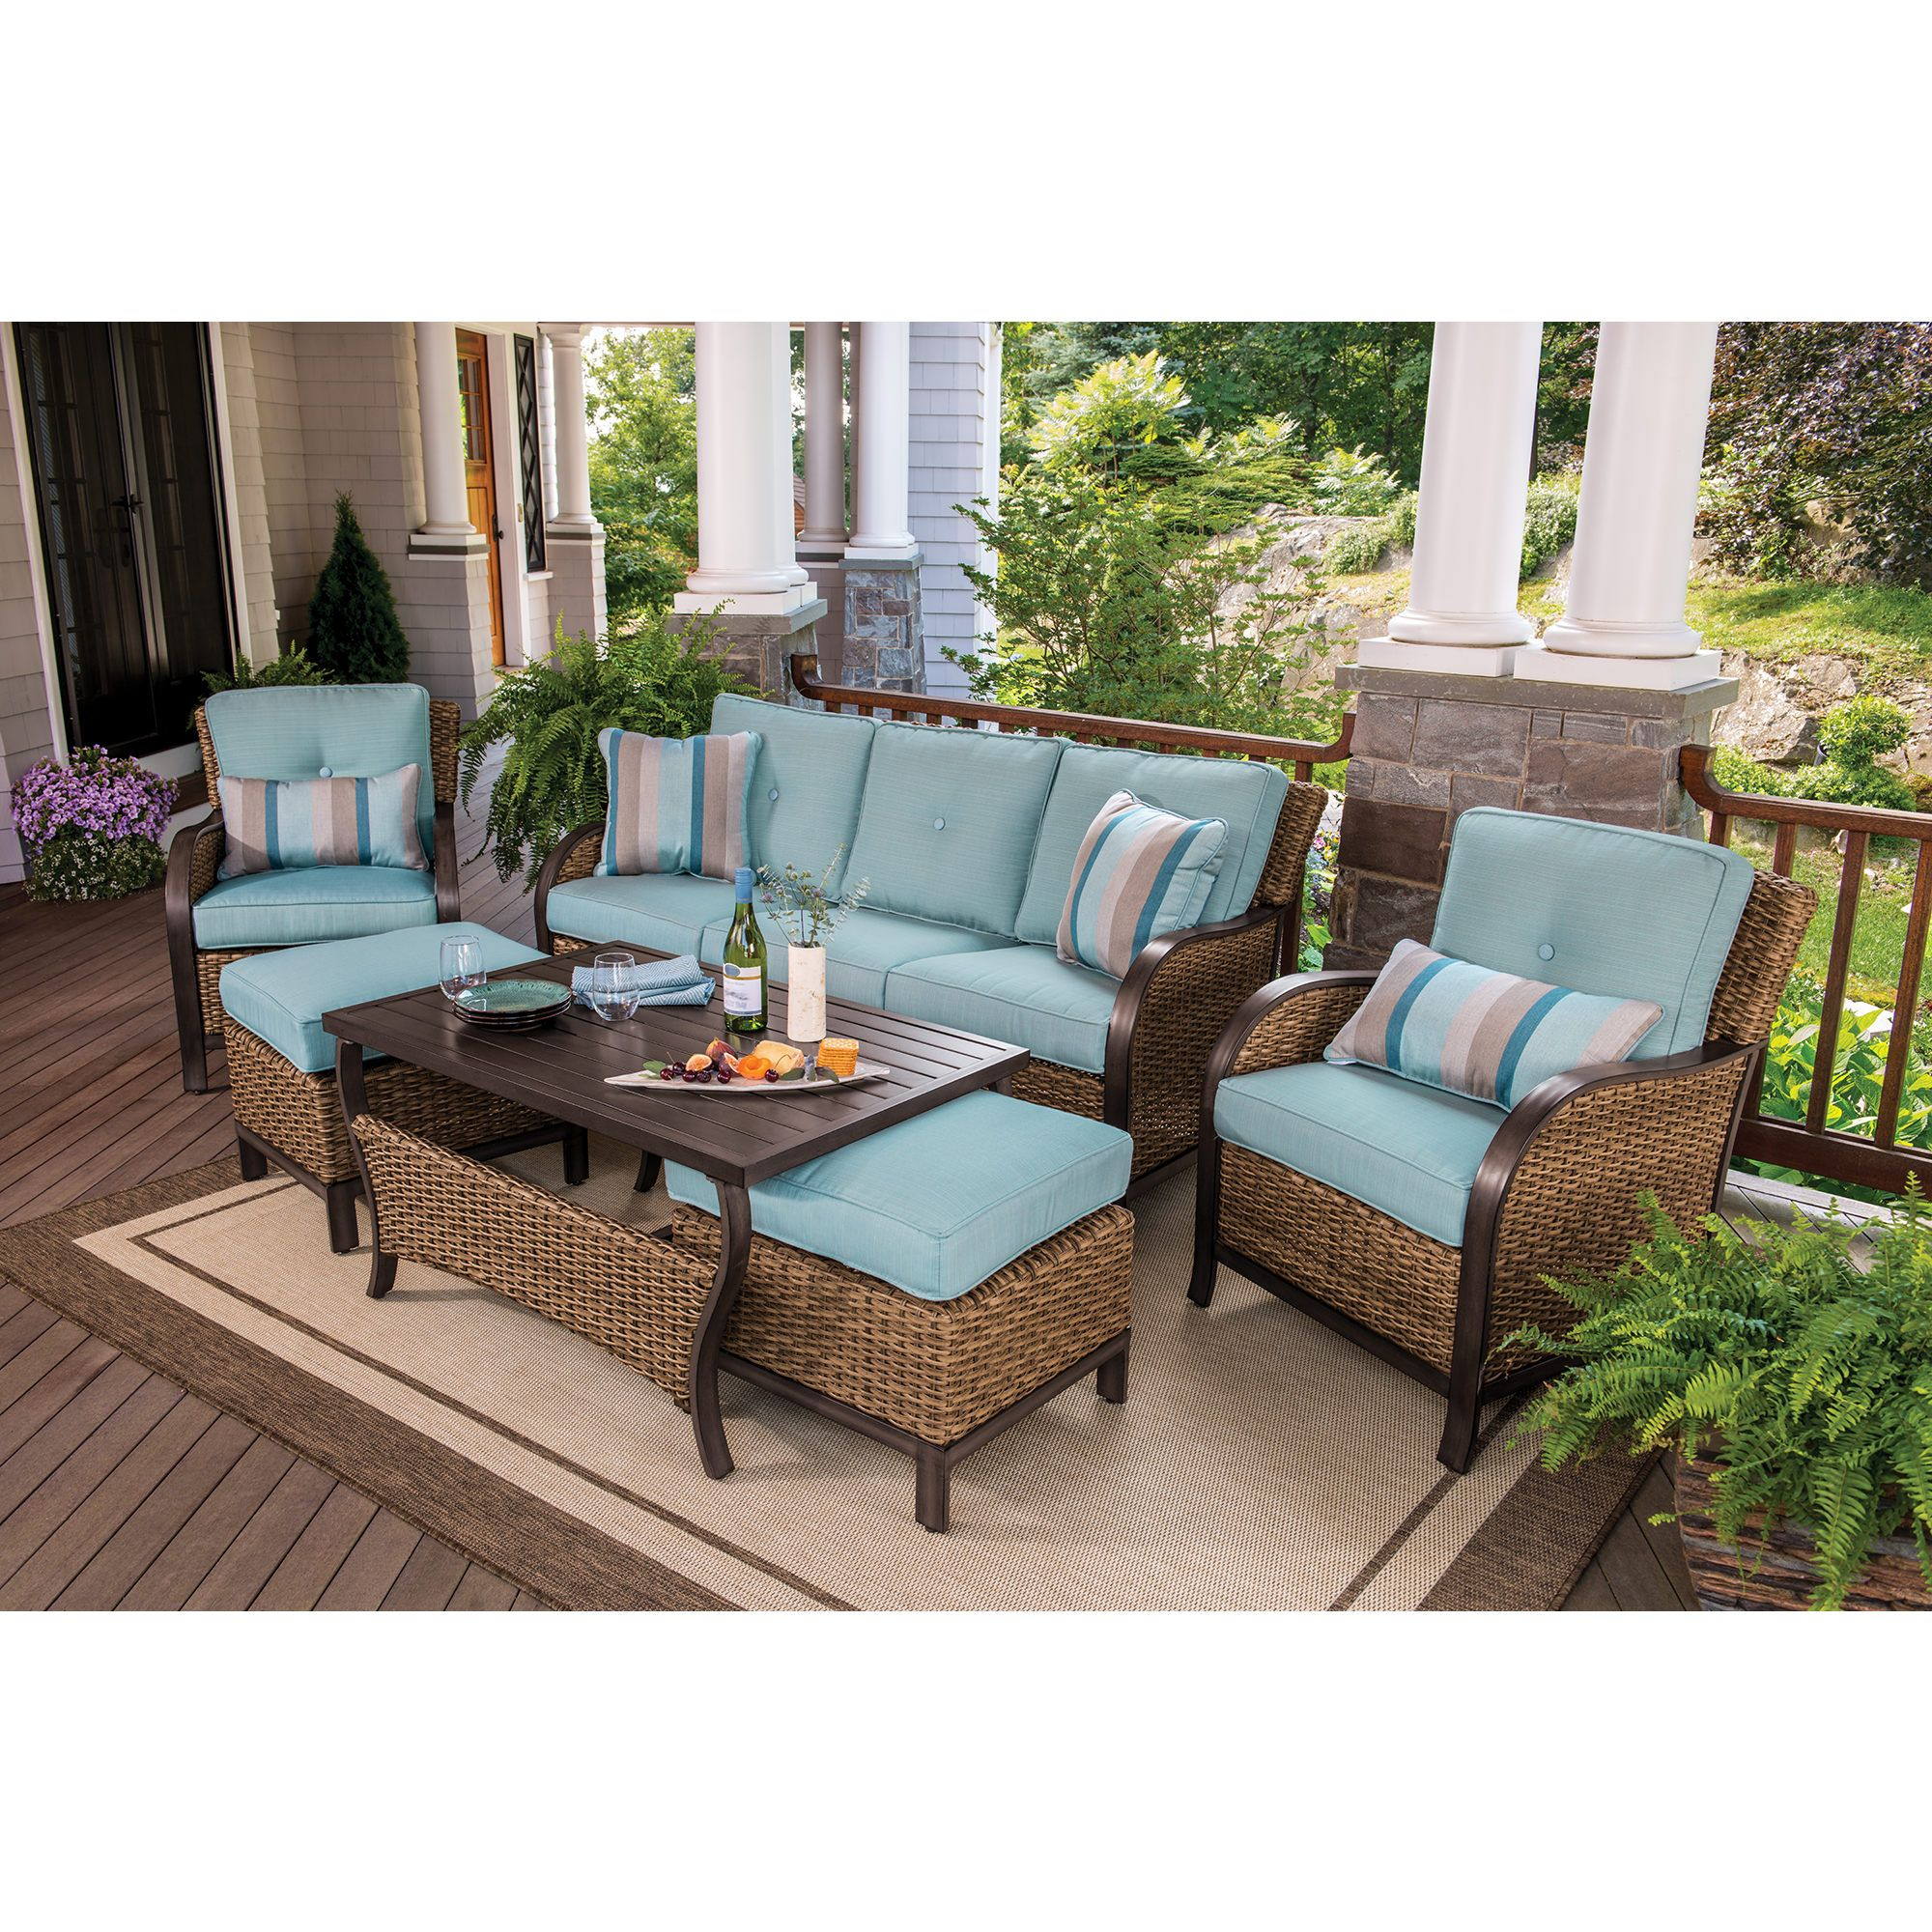 Berkley jensen nantucket 6 piece wicker patio set bjs for Balcony furniture set